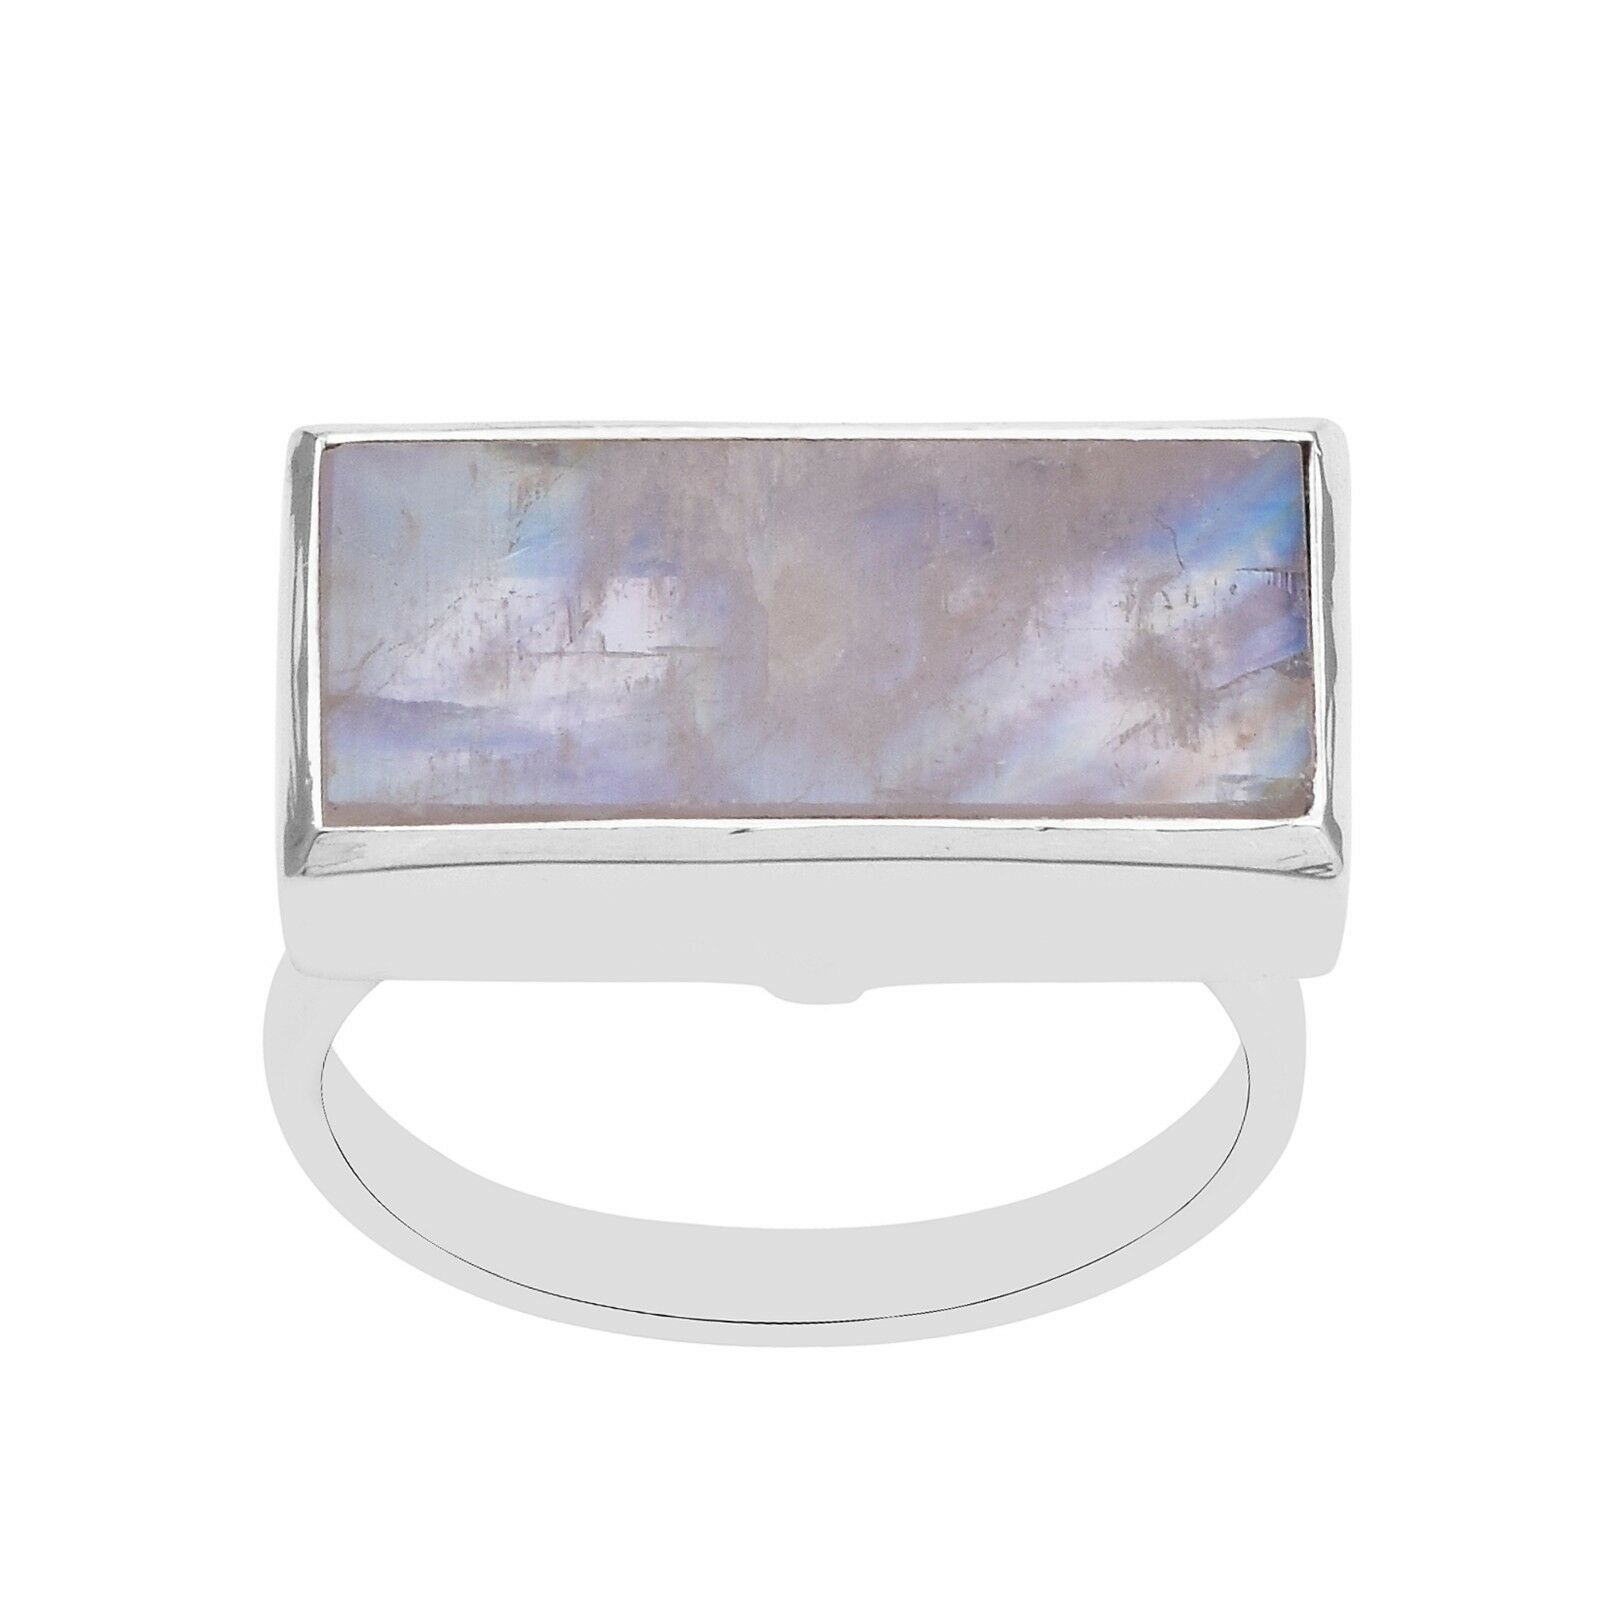 Solid 925 Silver Ring Women/Girls Rainbow Moonstone Rectangle 8X18 mm Ring Bezel